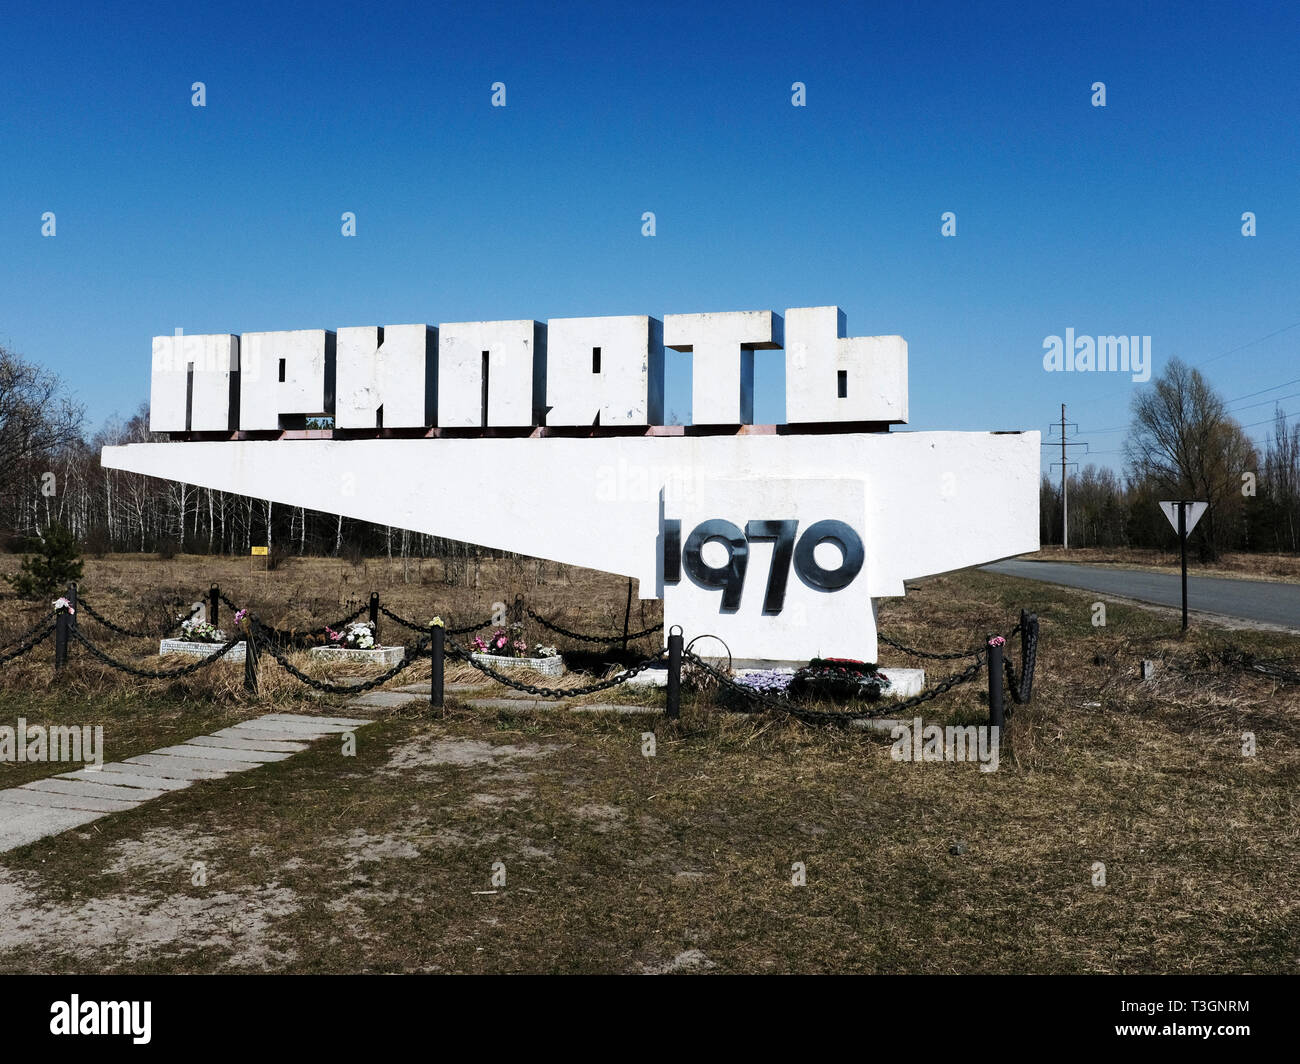 The town sign of the city of Pripyat in the exclusion zone of Chernobyl, Ukraine, April 2019 - Stock Image